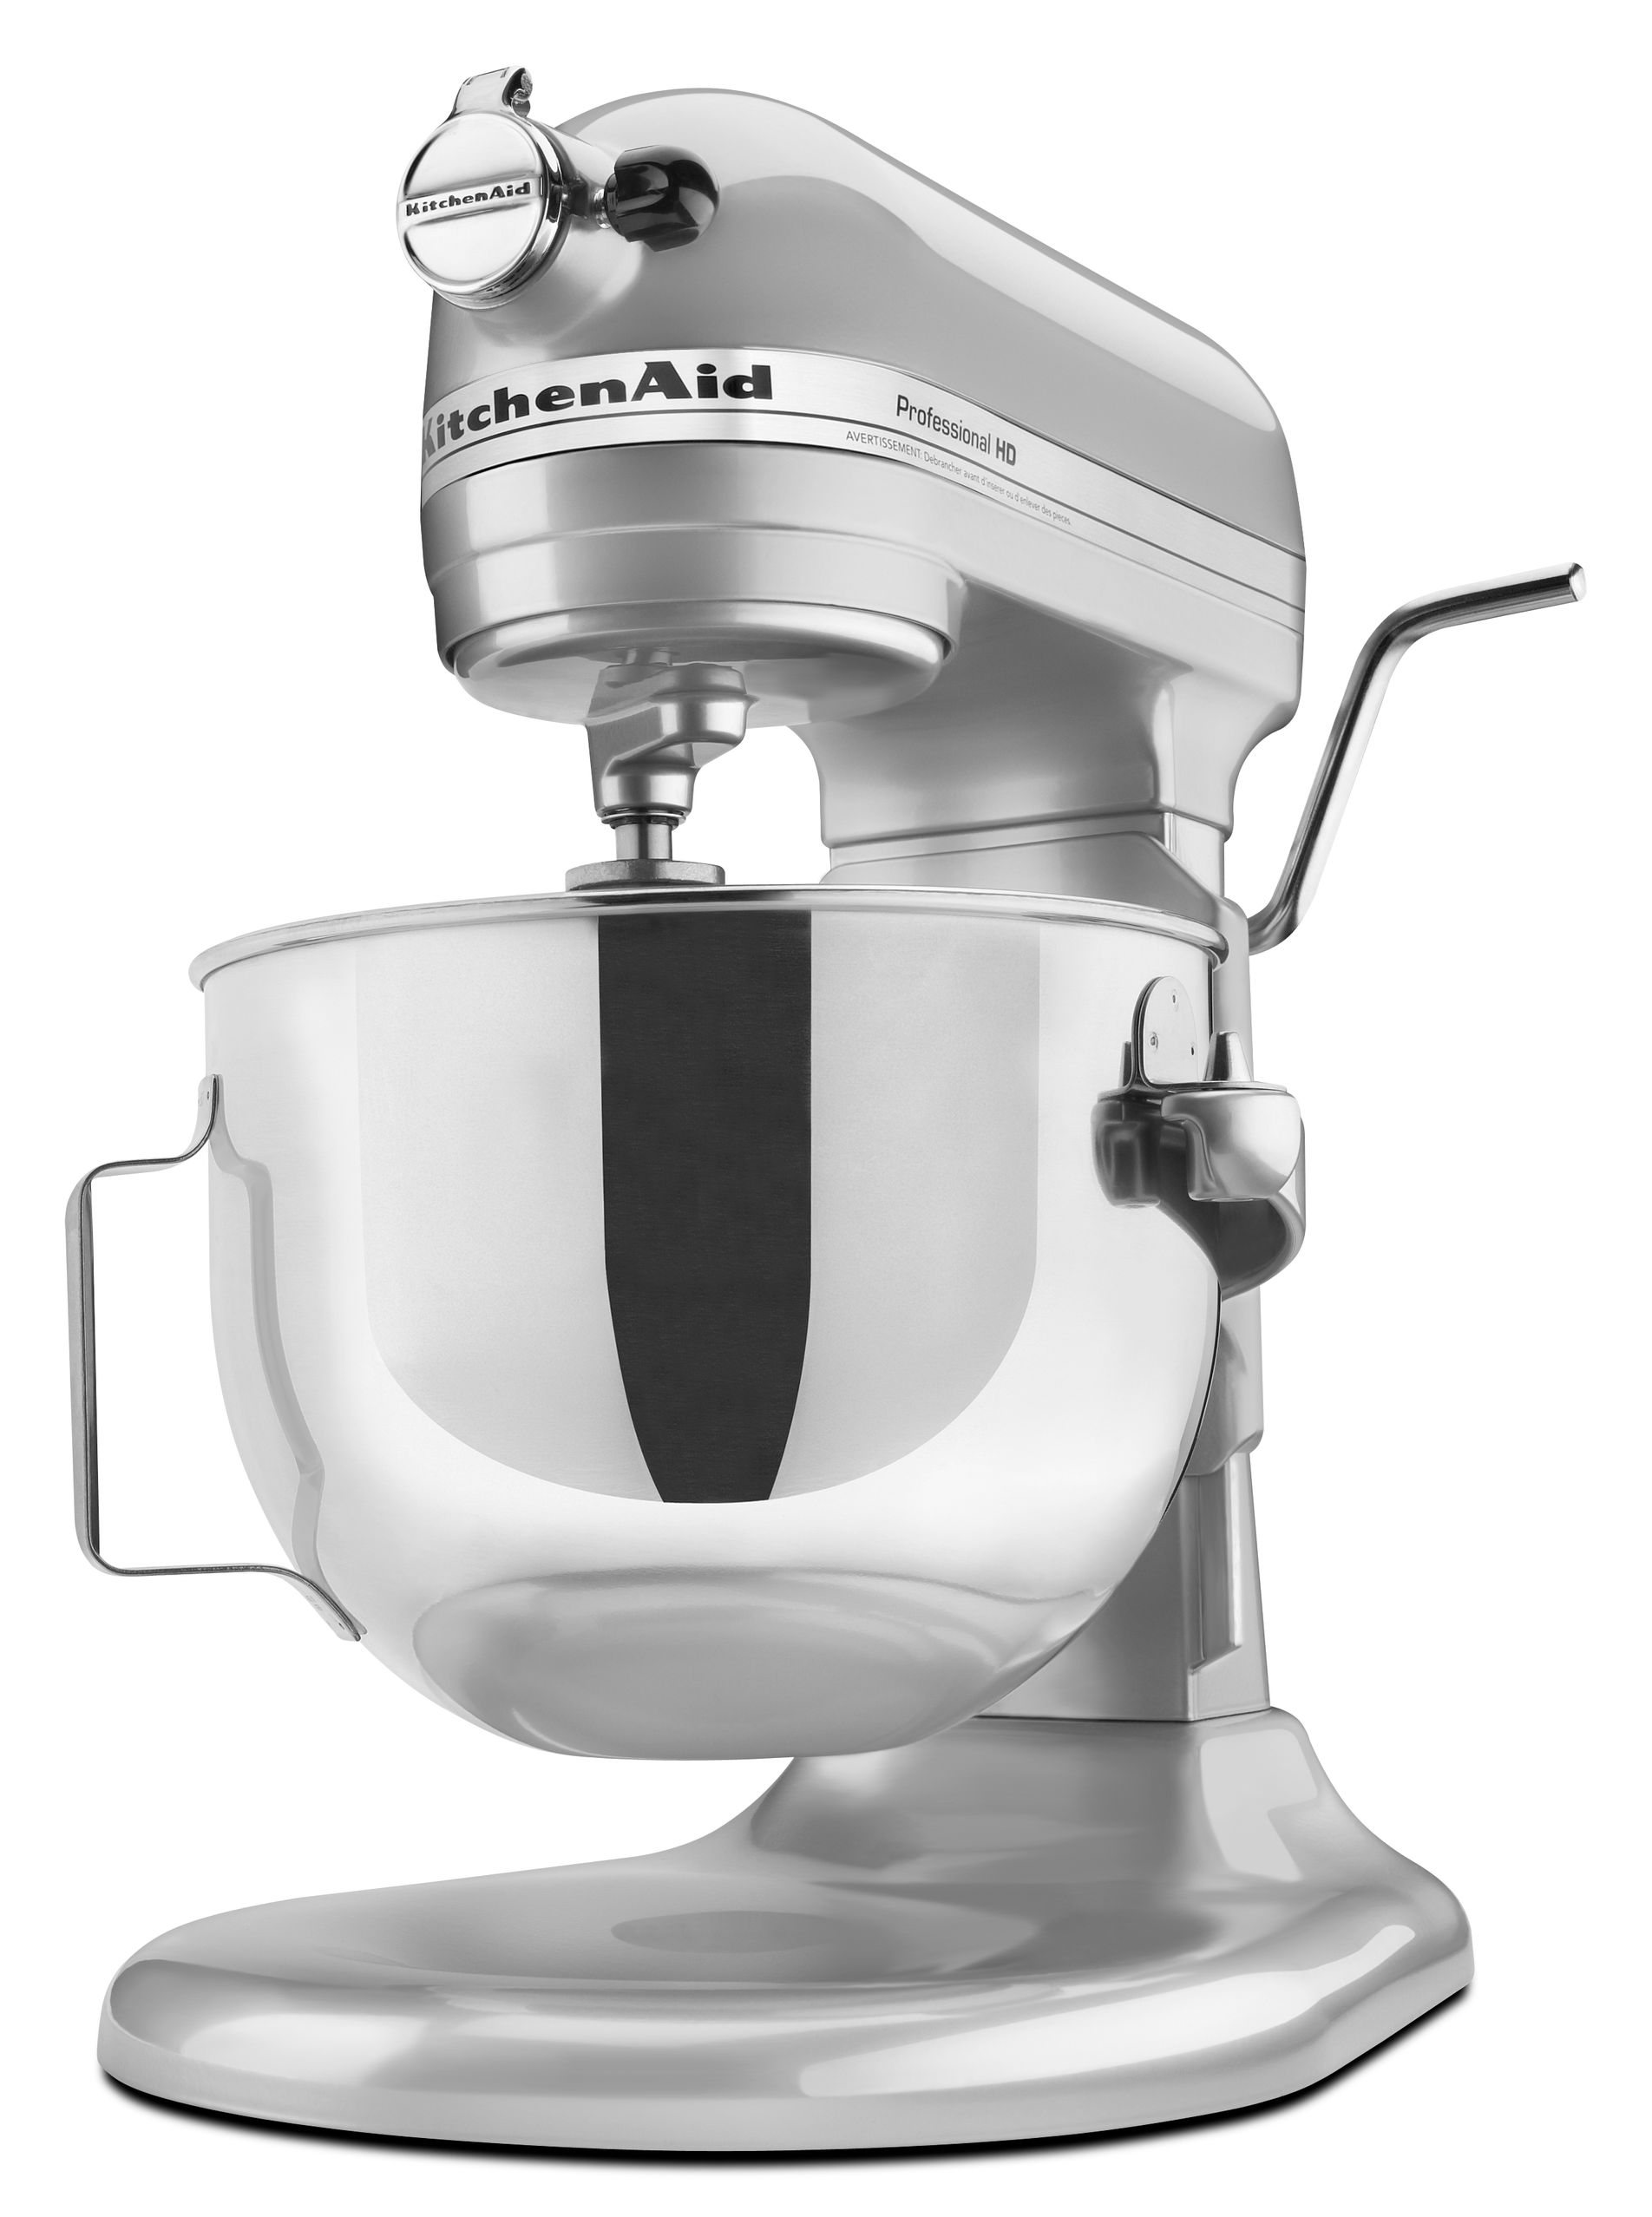 KitchenAid-Refurbished-Professional-HD-Series-Bowl-Lift-Stand-Mixer-RKG25H0X thumbnail 12